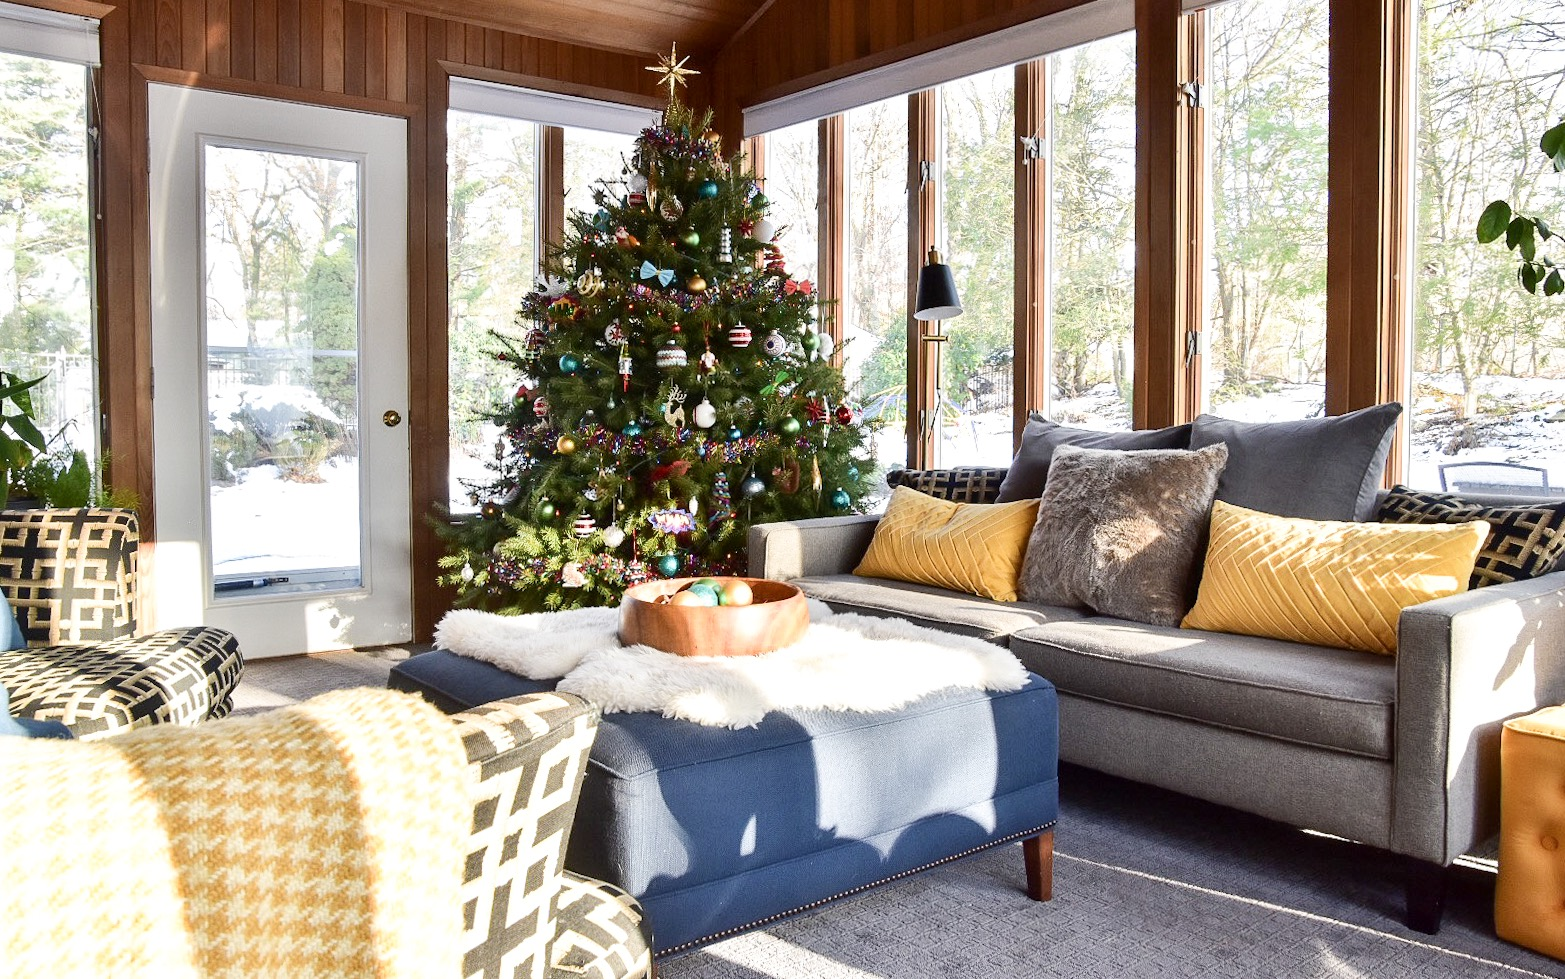 Holiday Home Tour Creating A Colorful Christmas Part 2